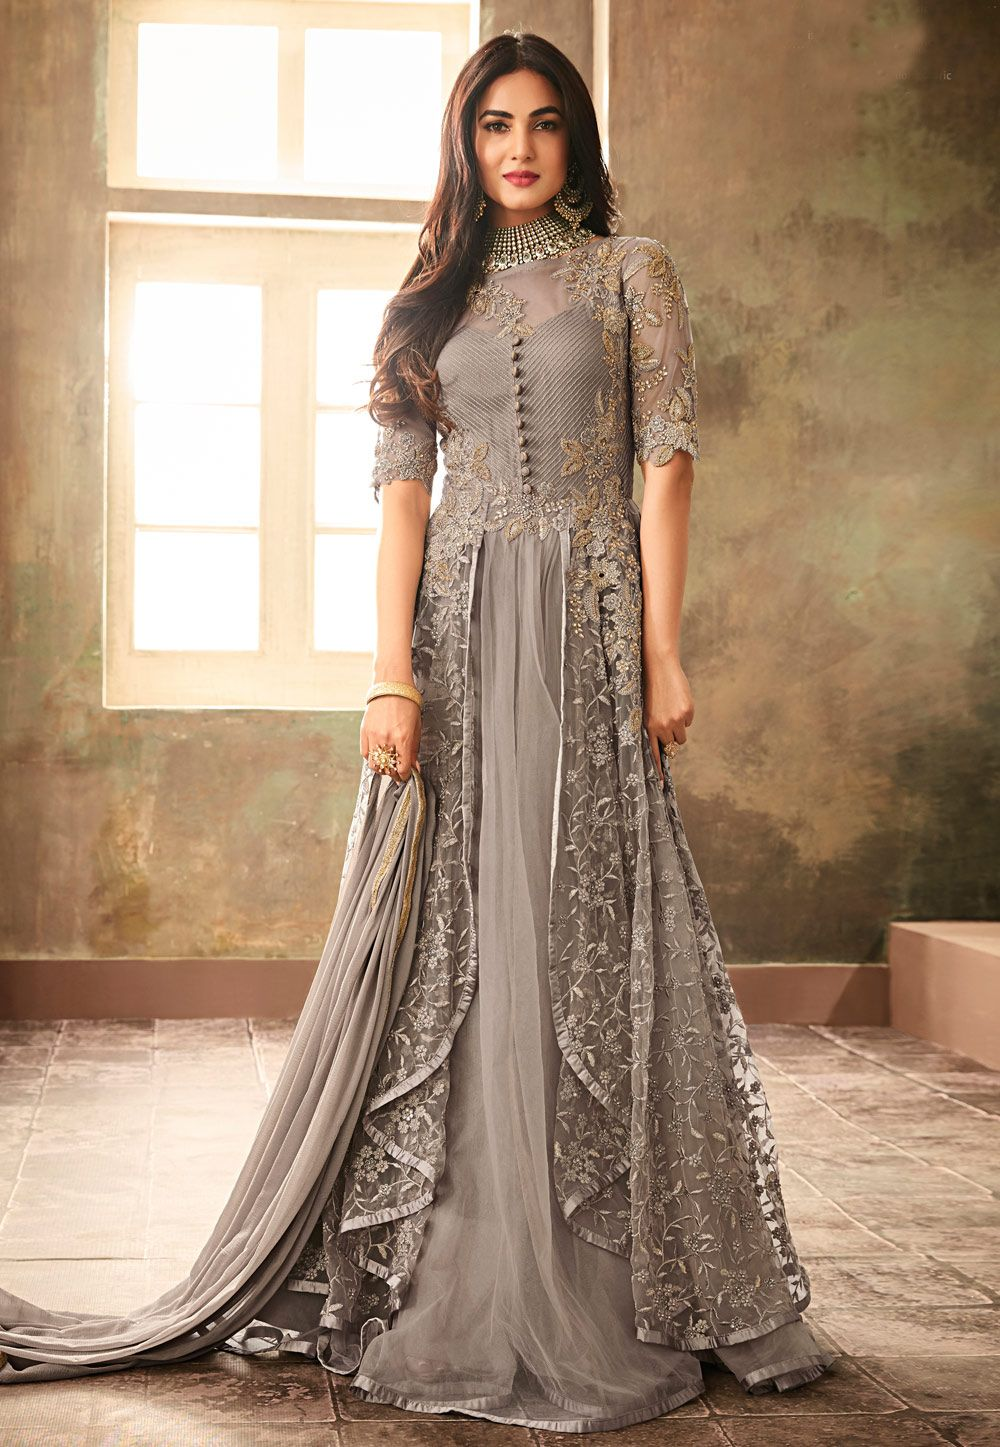 24004044ac19 Buy Sonal Chauhan Gray Net Floor Length Anarkali Suit 157229 online at  lowest price from huge collection of salwar kameez at Indianclothstore.com.